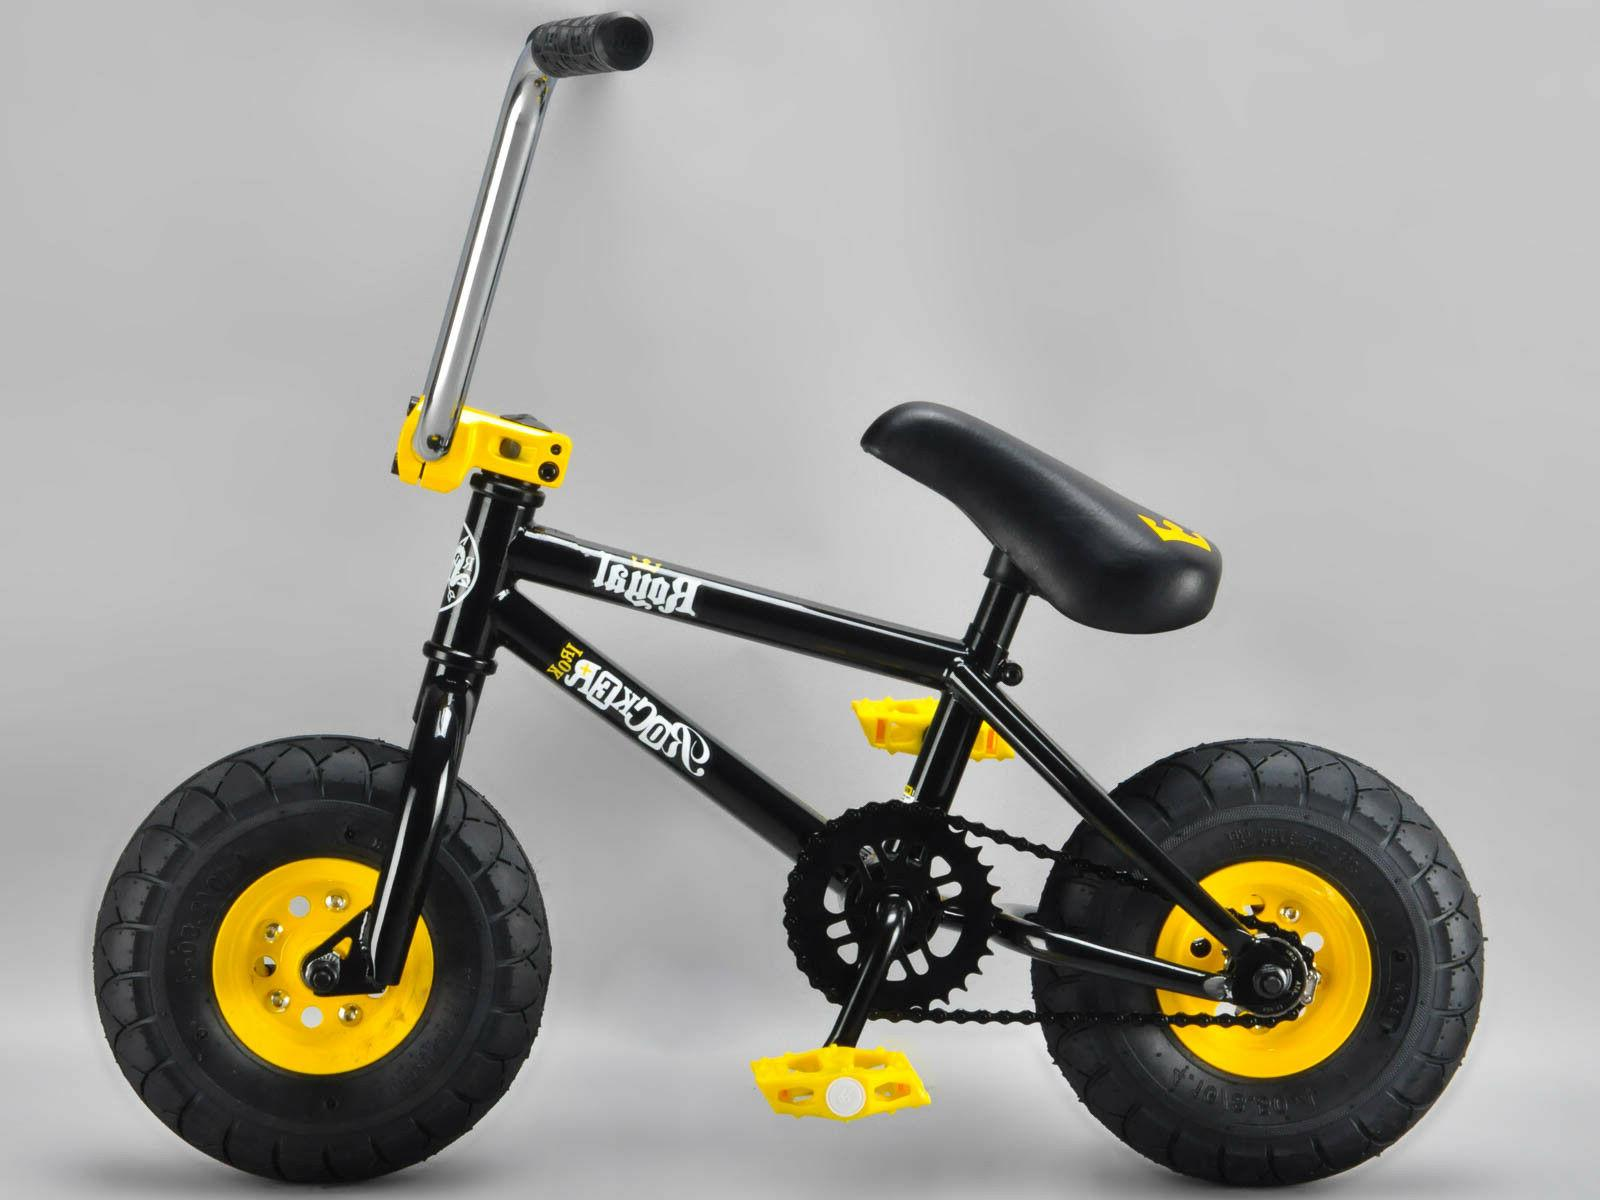 mini bike royal irok rkr